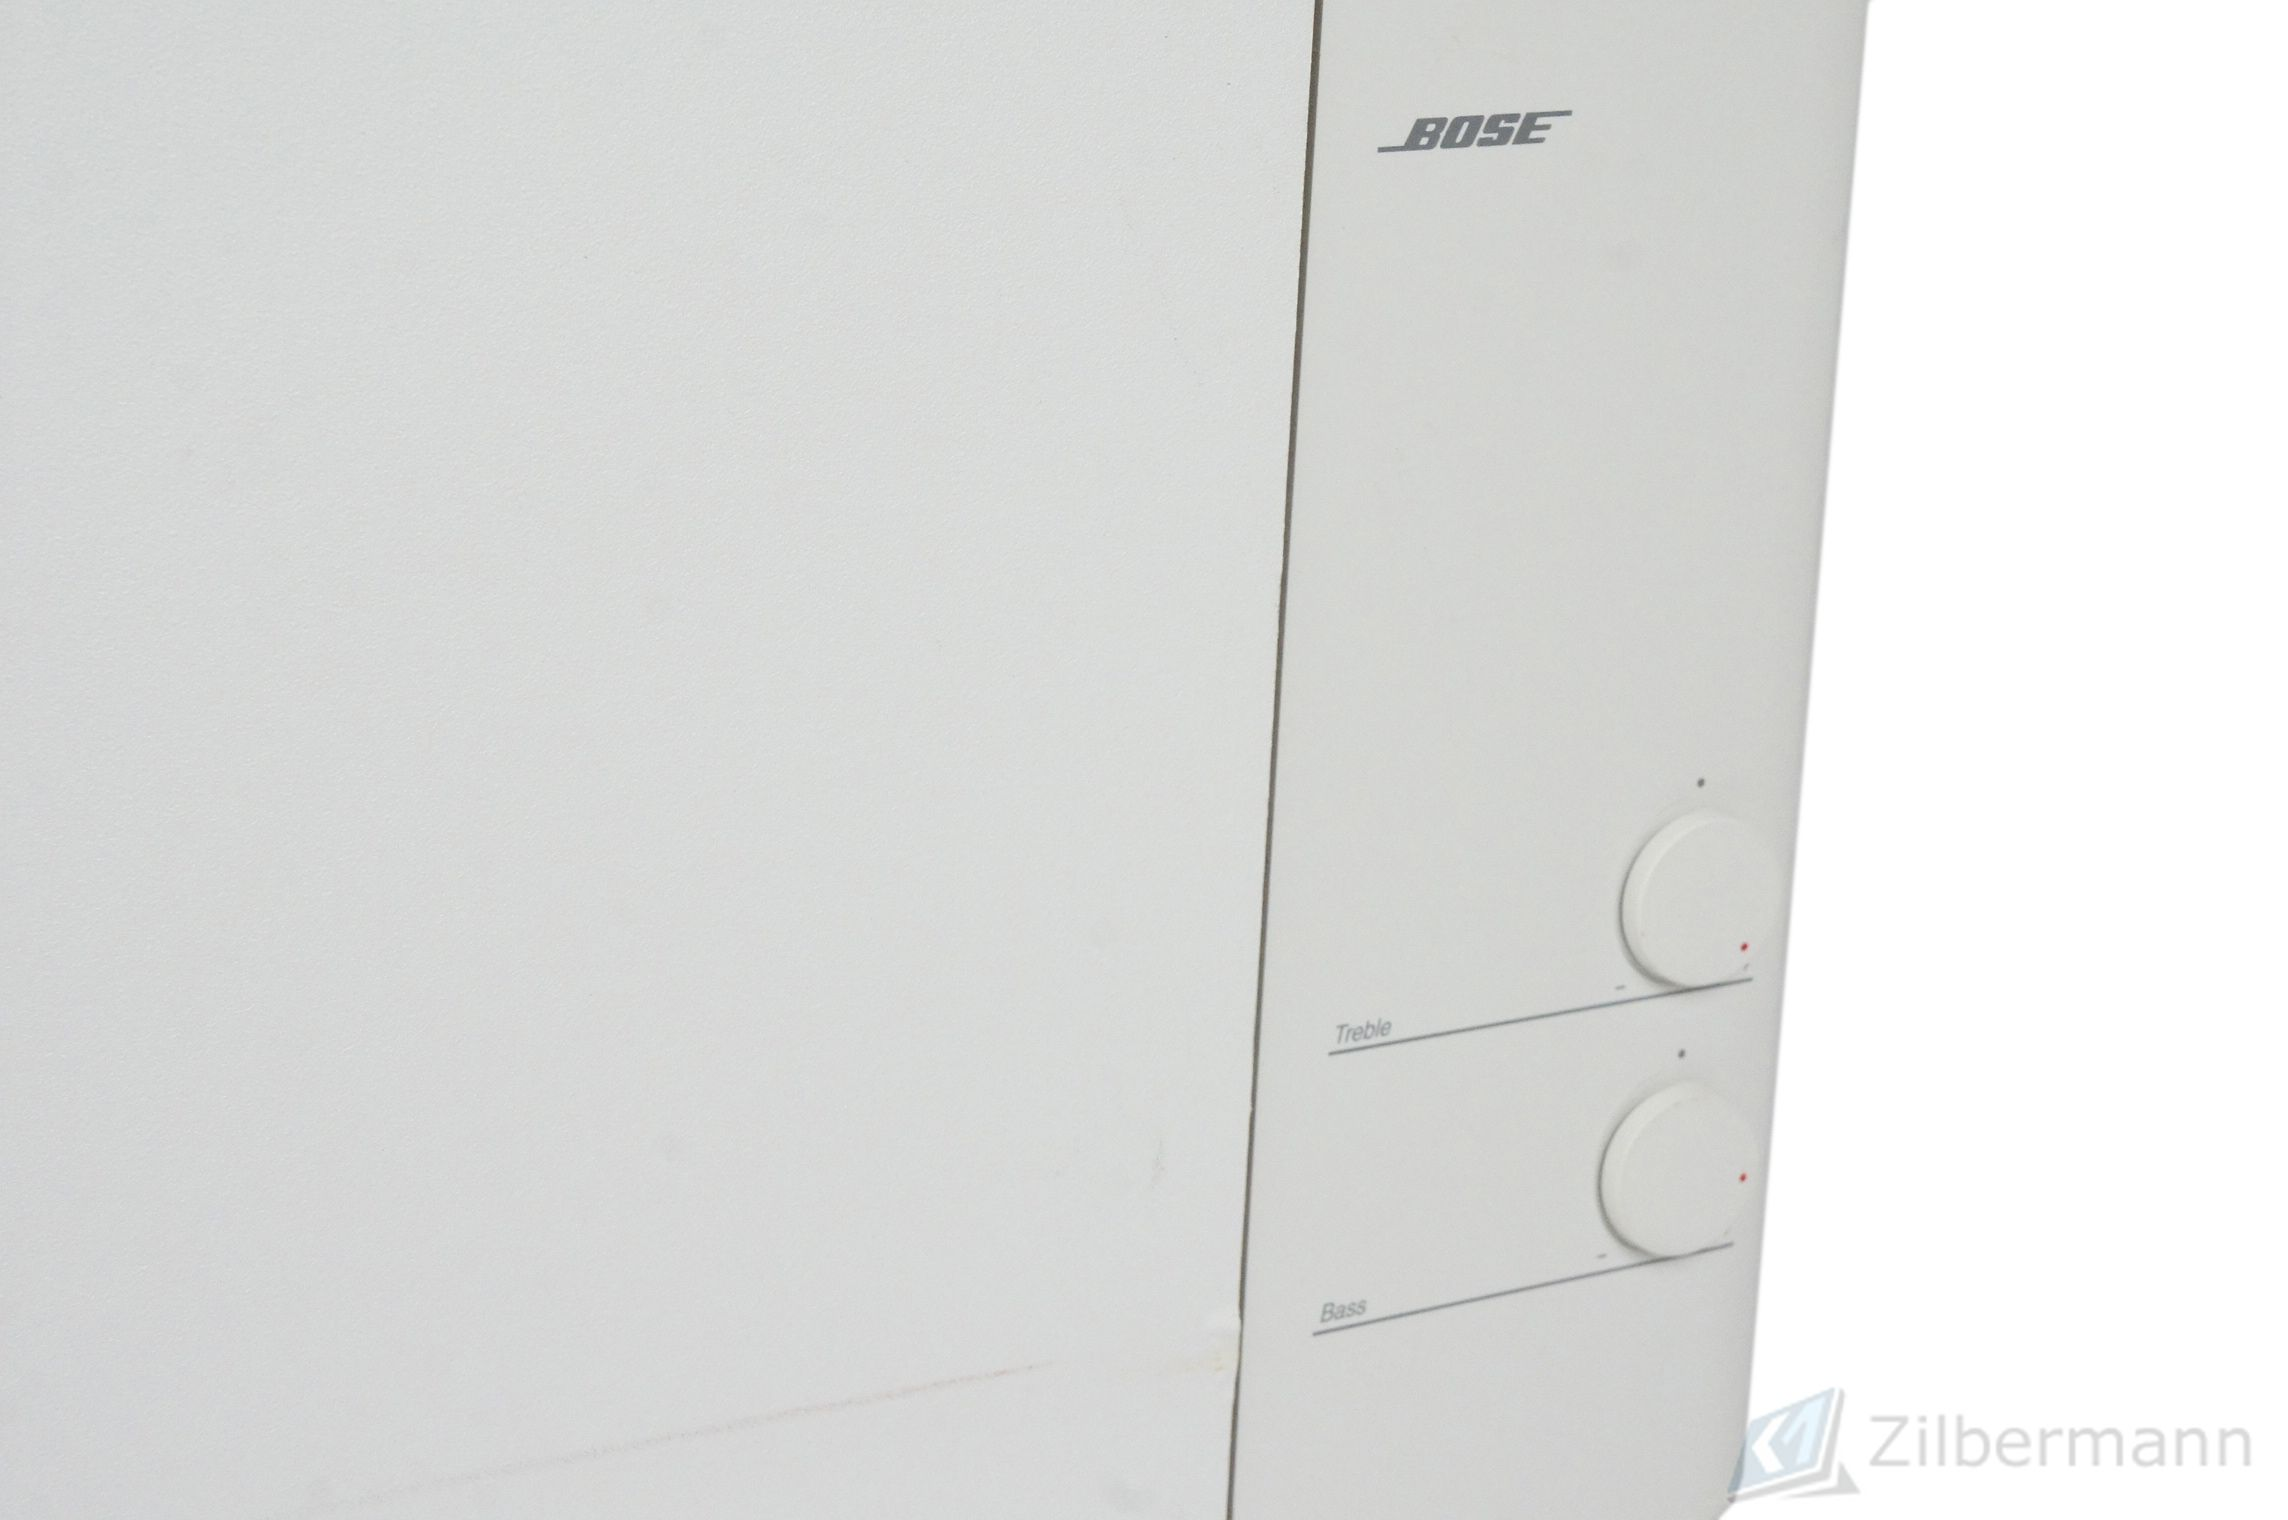 Bose_Powered_Acoustimass_8_Subwoofer_Weiss_04